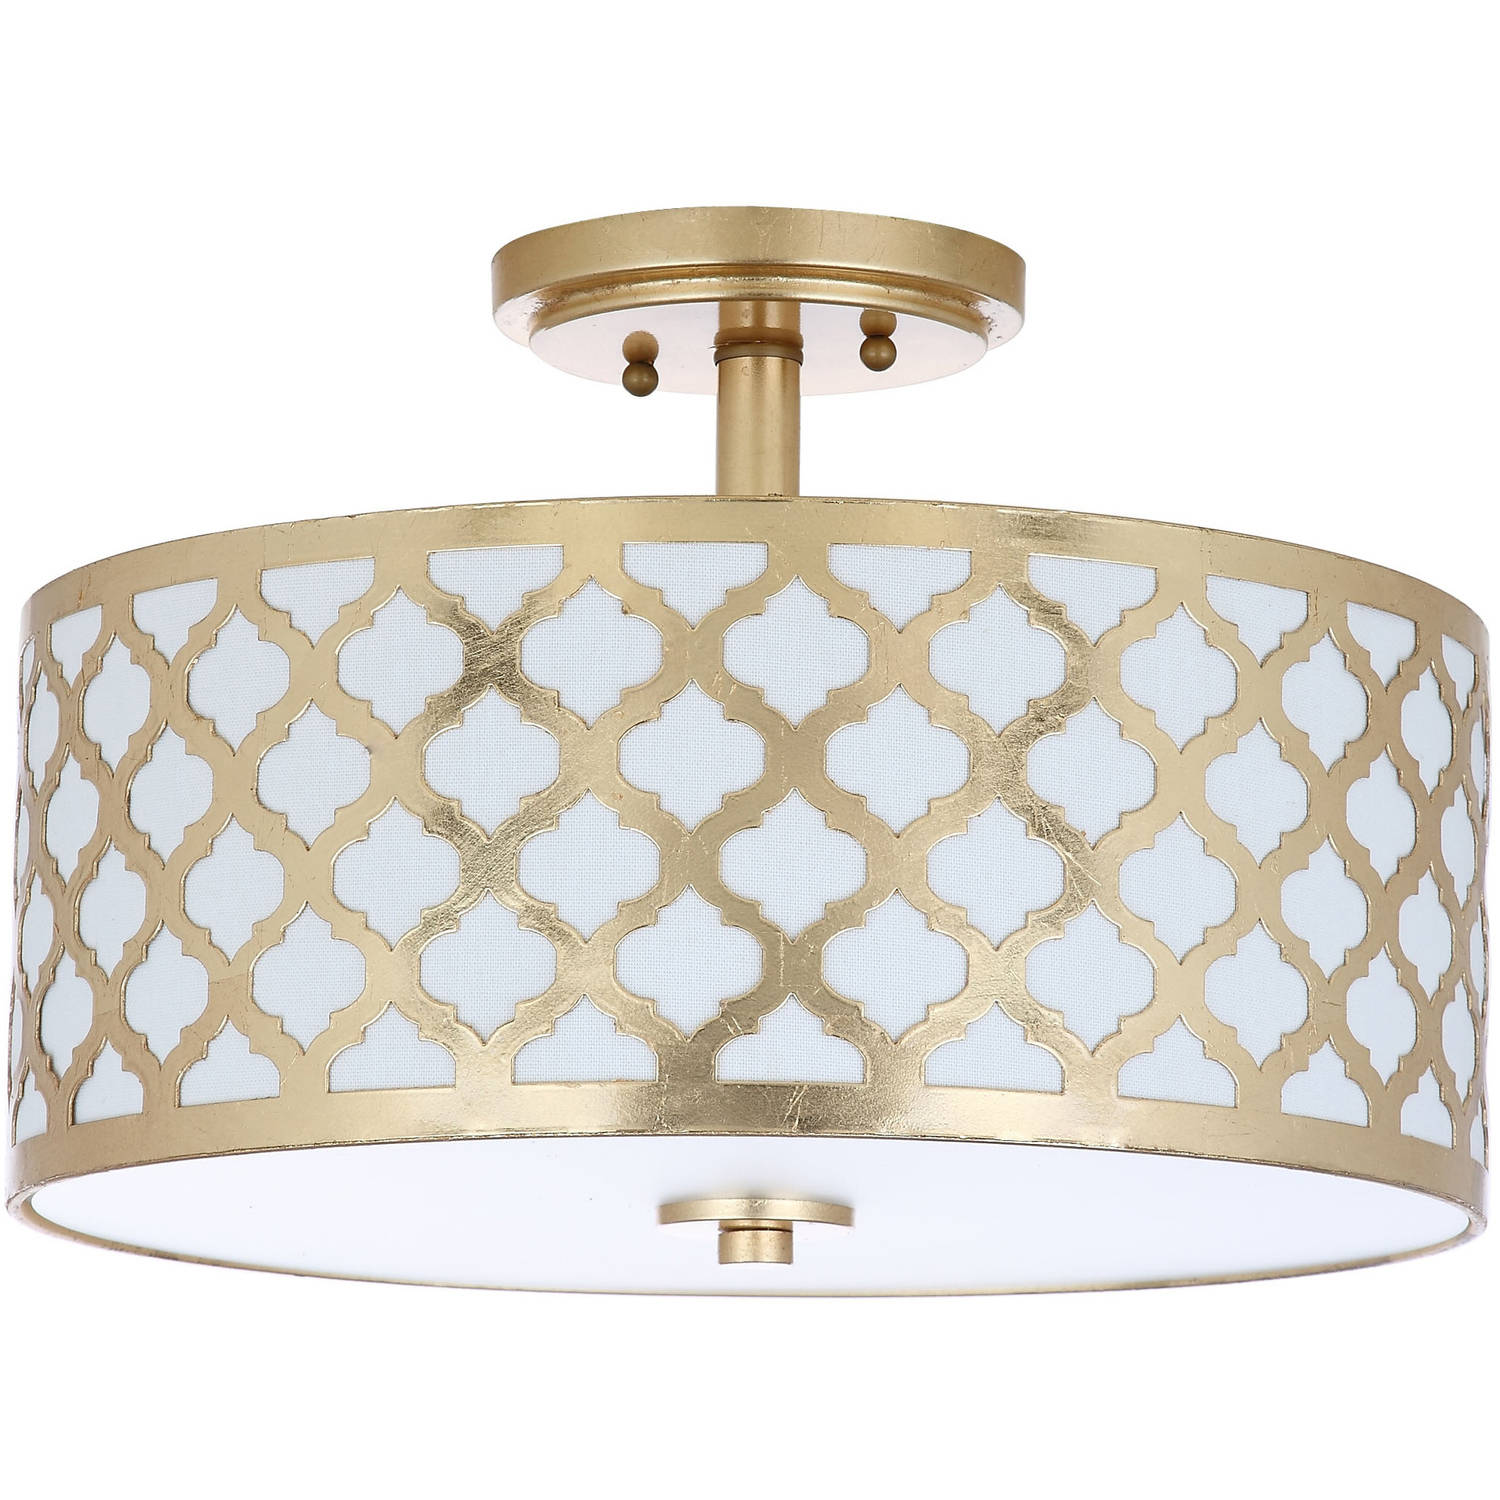 "Safavieh Kora 3-Light 15"" Diameter Flush Mount"